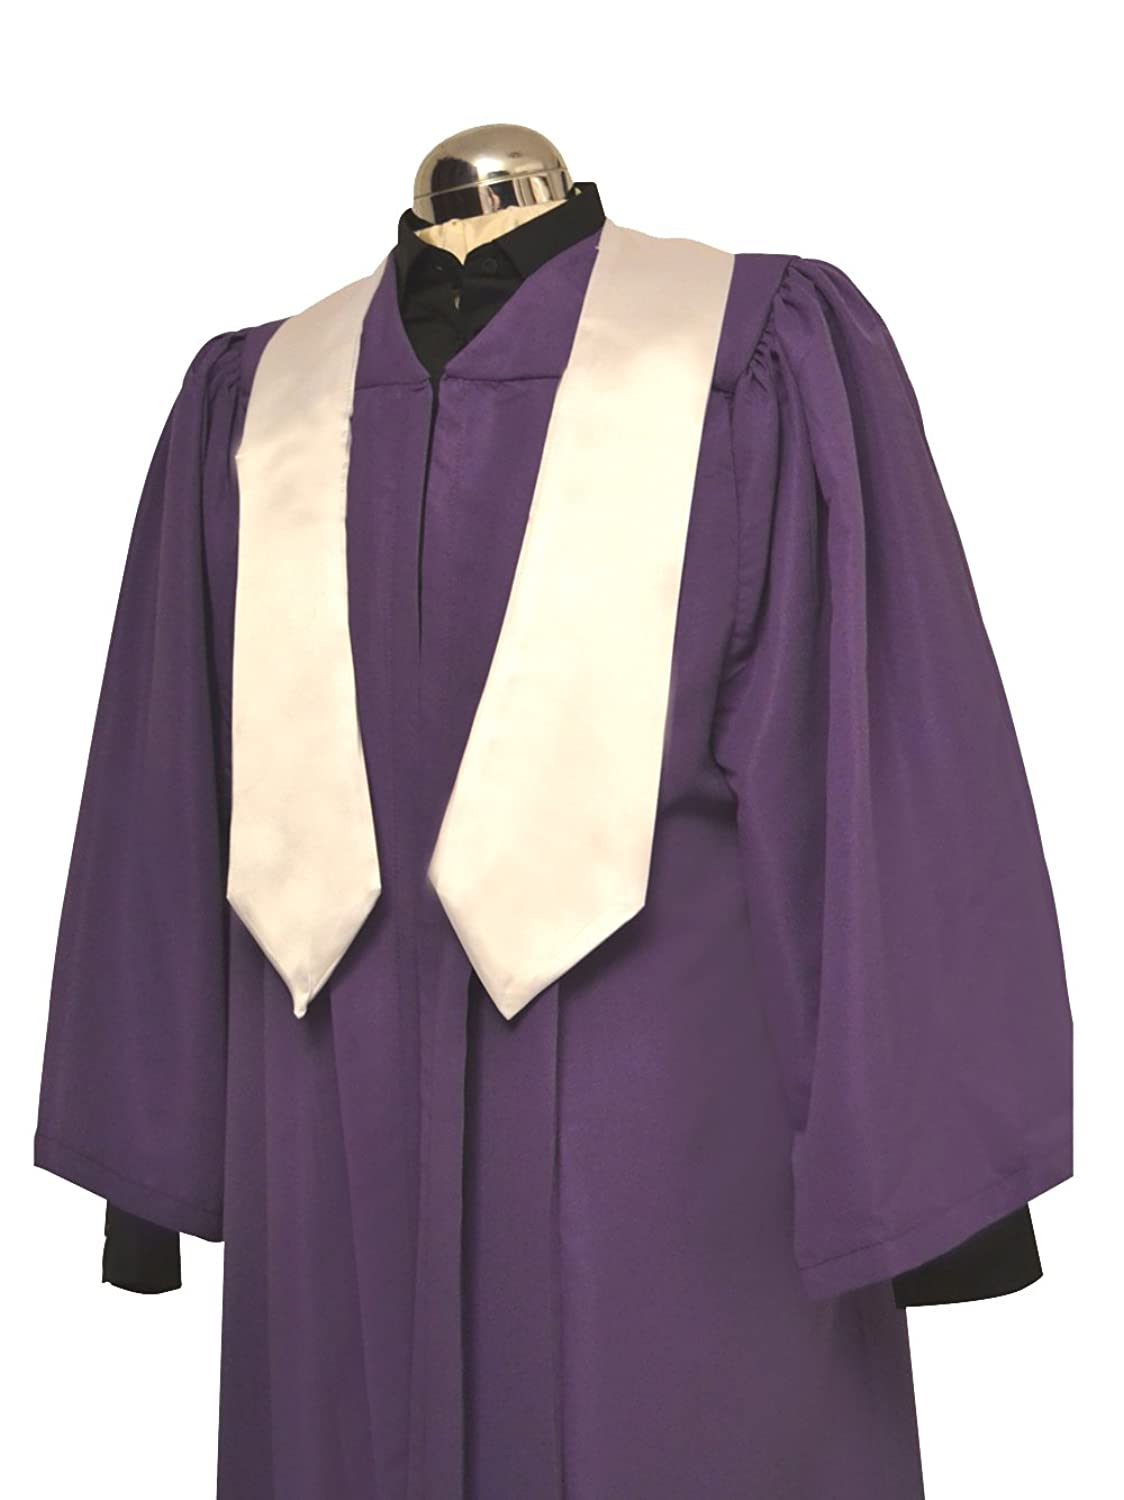 Amazon.com: Flat Pleat Choir Gown Purple with White Stole: Clothing